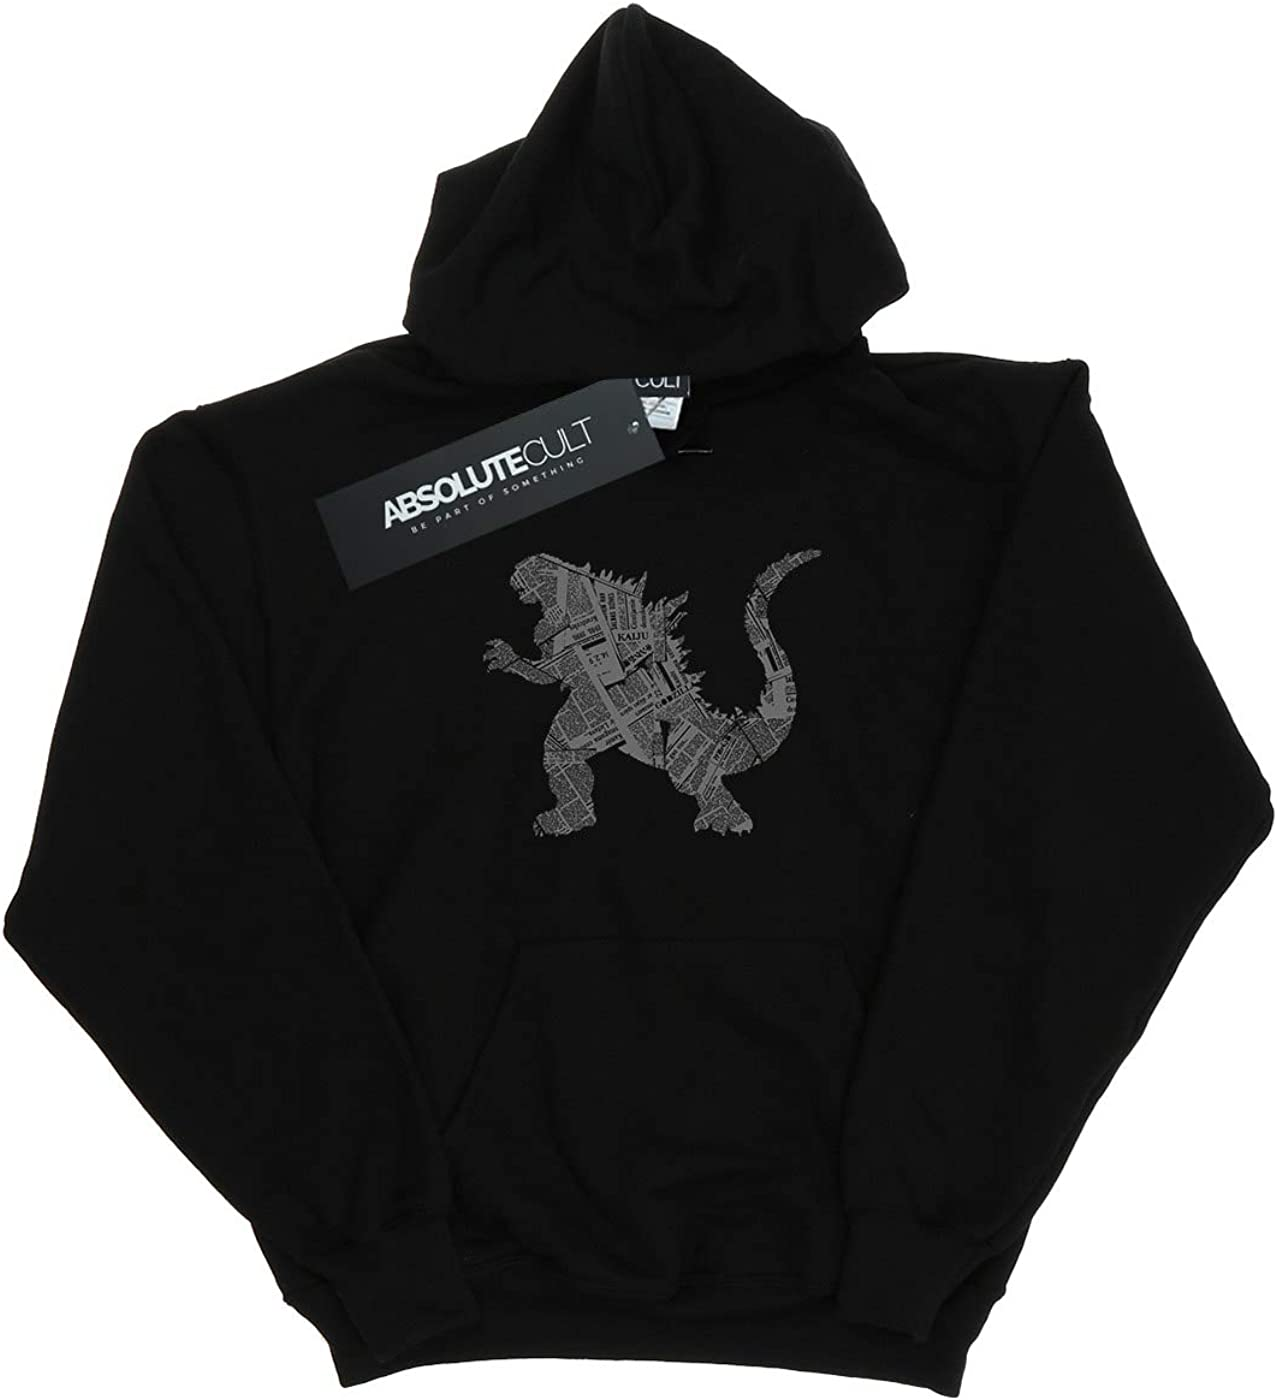 Absolute Cult Drewbacca Girls Kaiju Headlines Hoodie